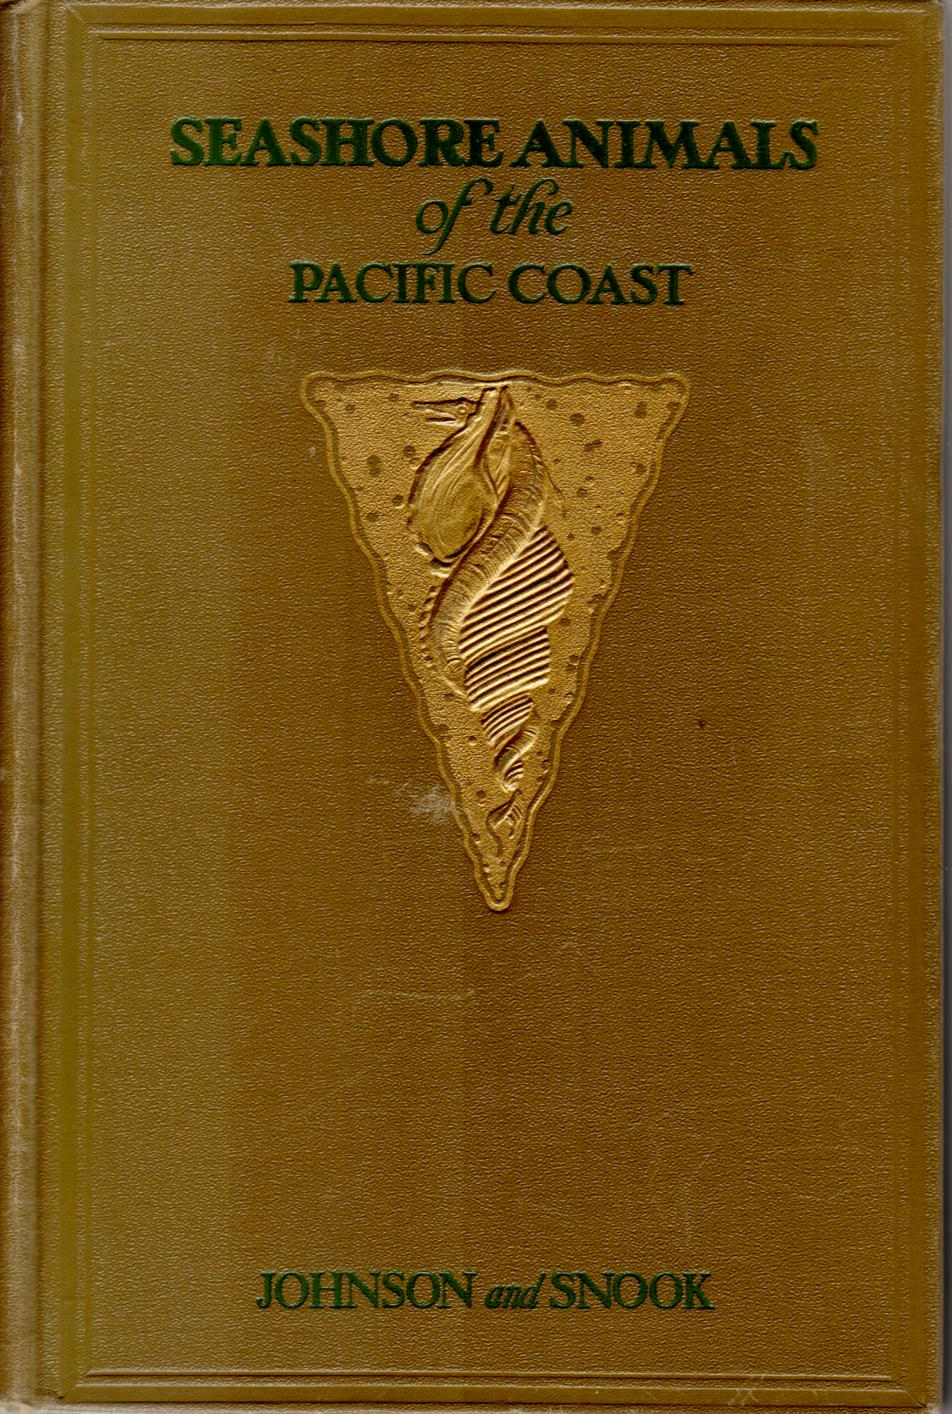 Image for SEASHORE ANIMALS OF THE PACIFIC COAST